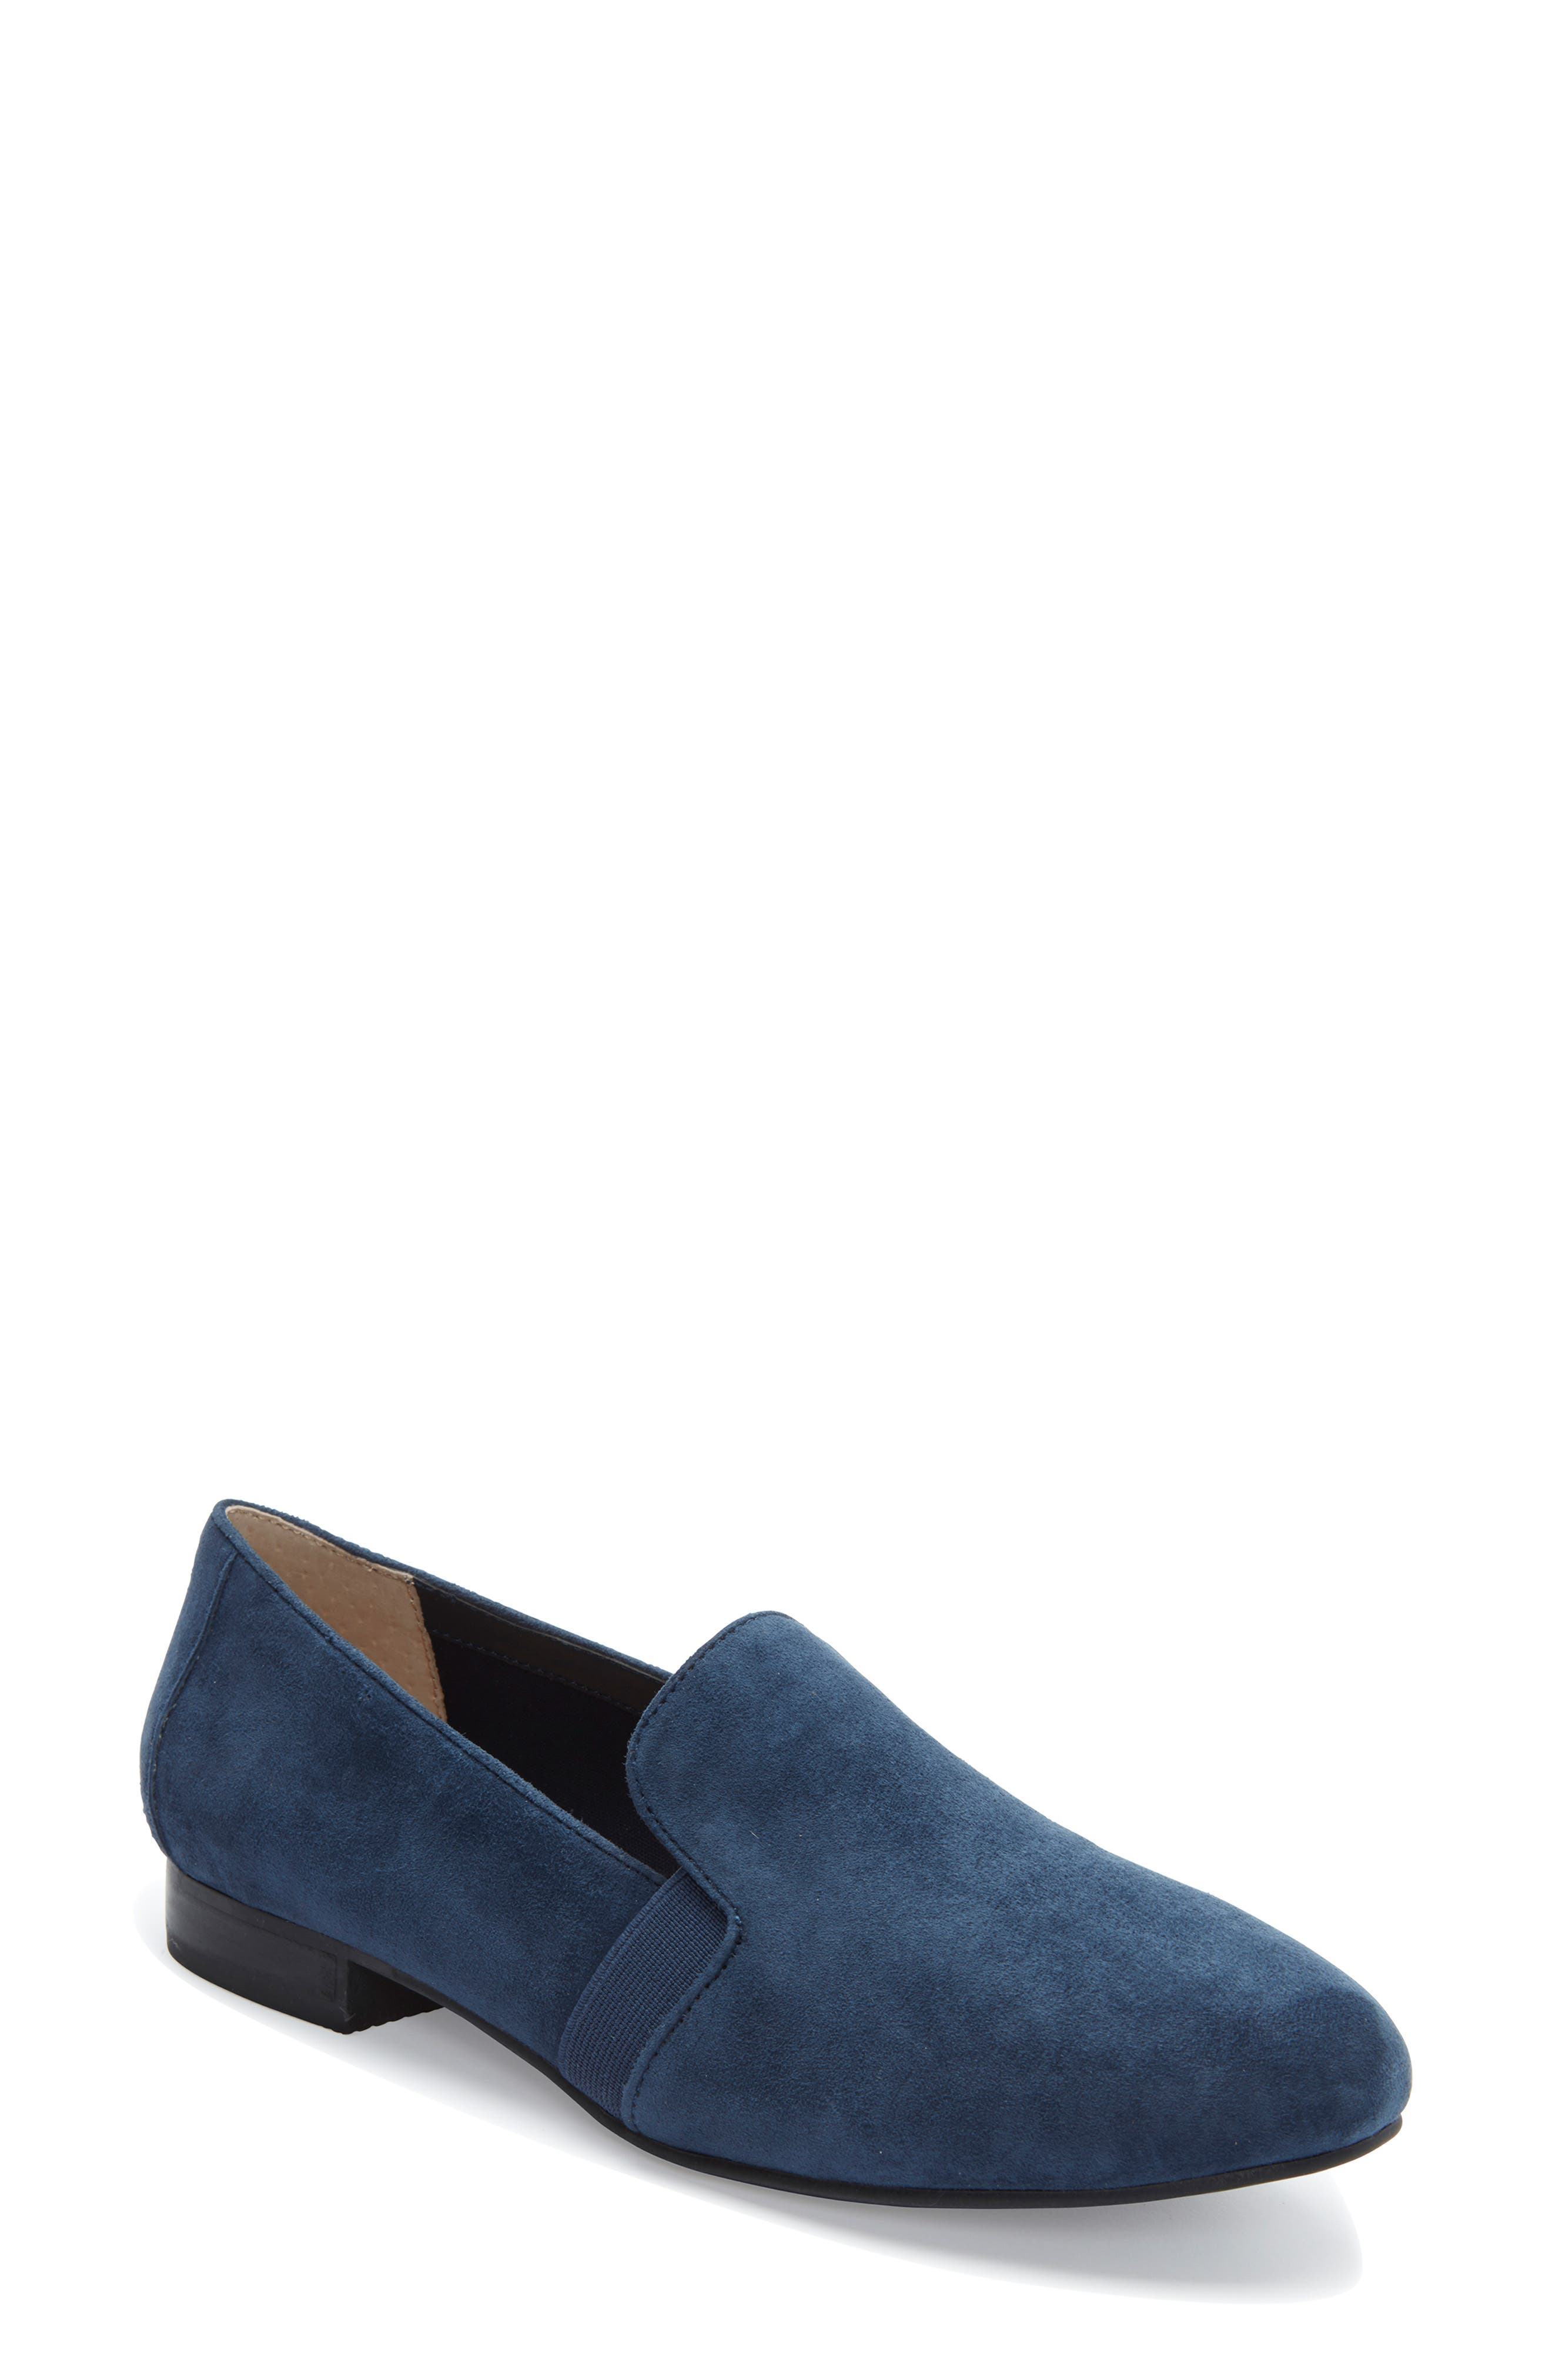 Me Too Yvonne Loafer, Blue